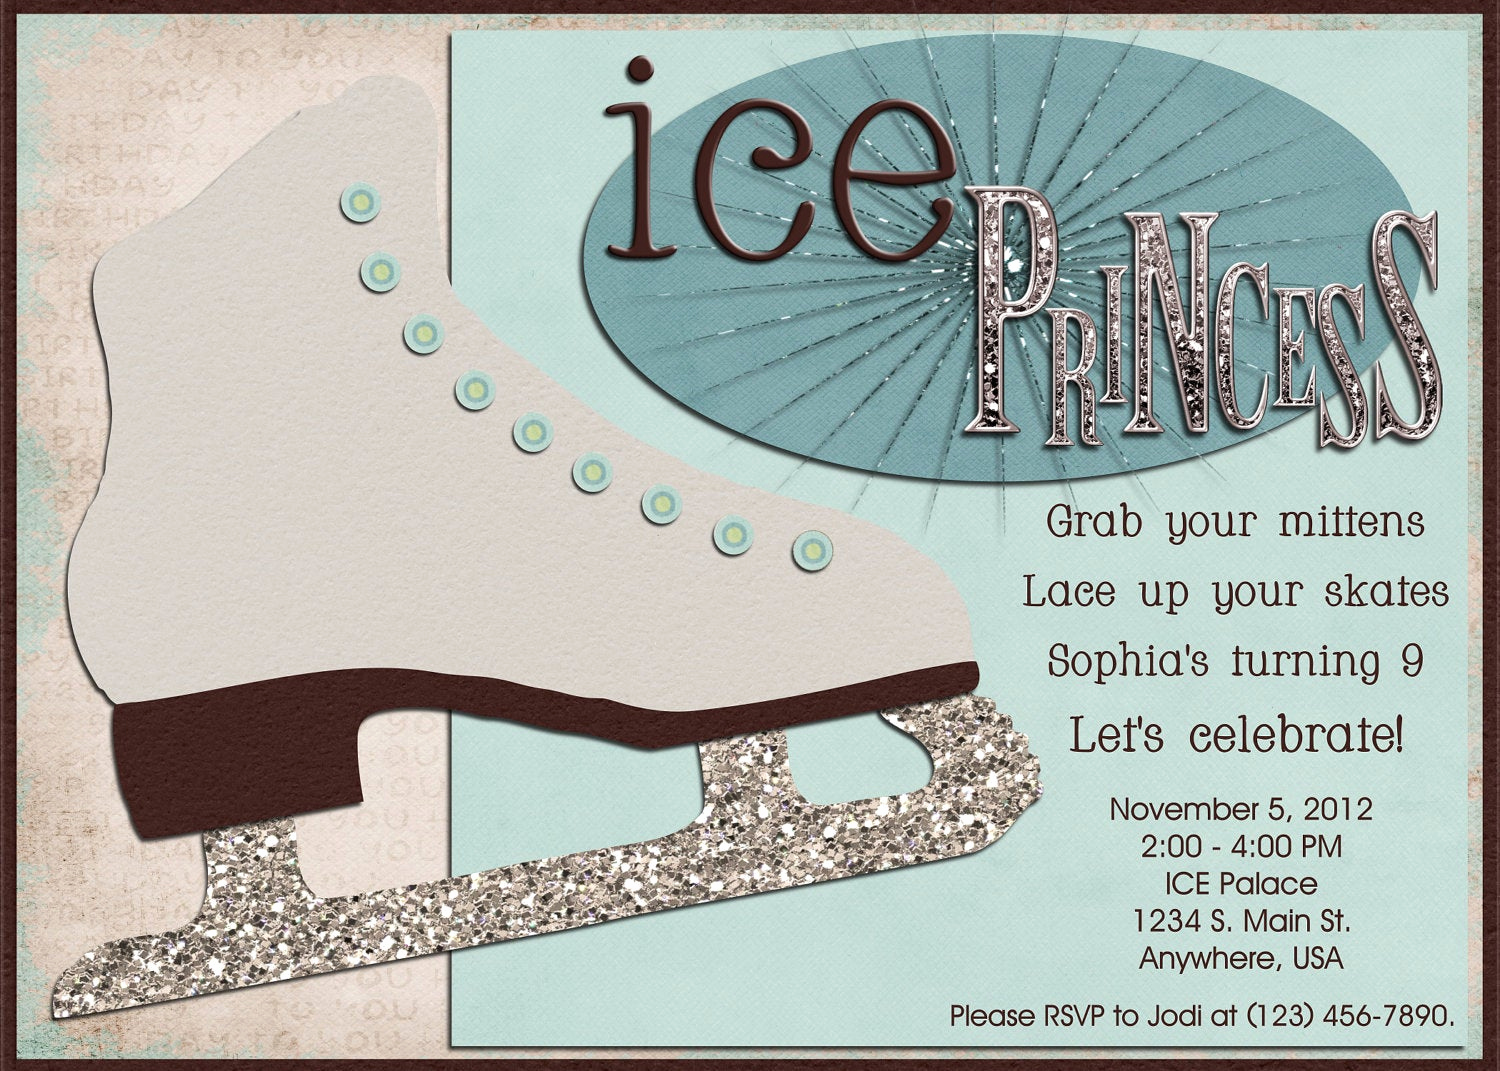 Ice Skate Party Invitation New Ice Skating Birthday Party Digital Invitation Blue Brown